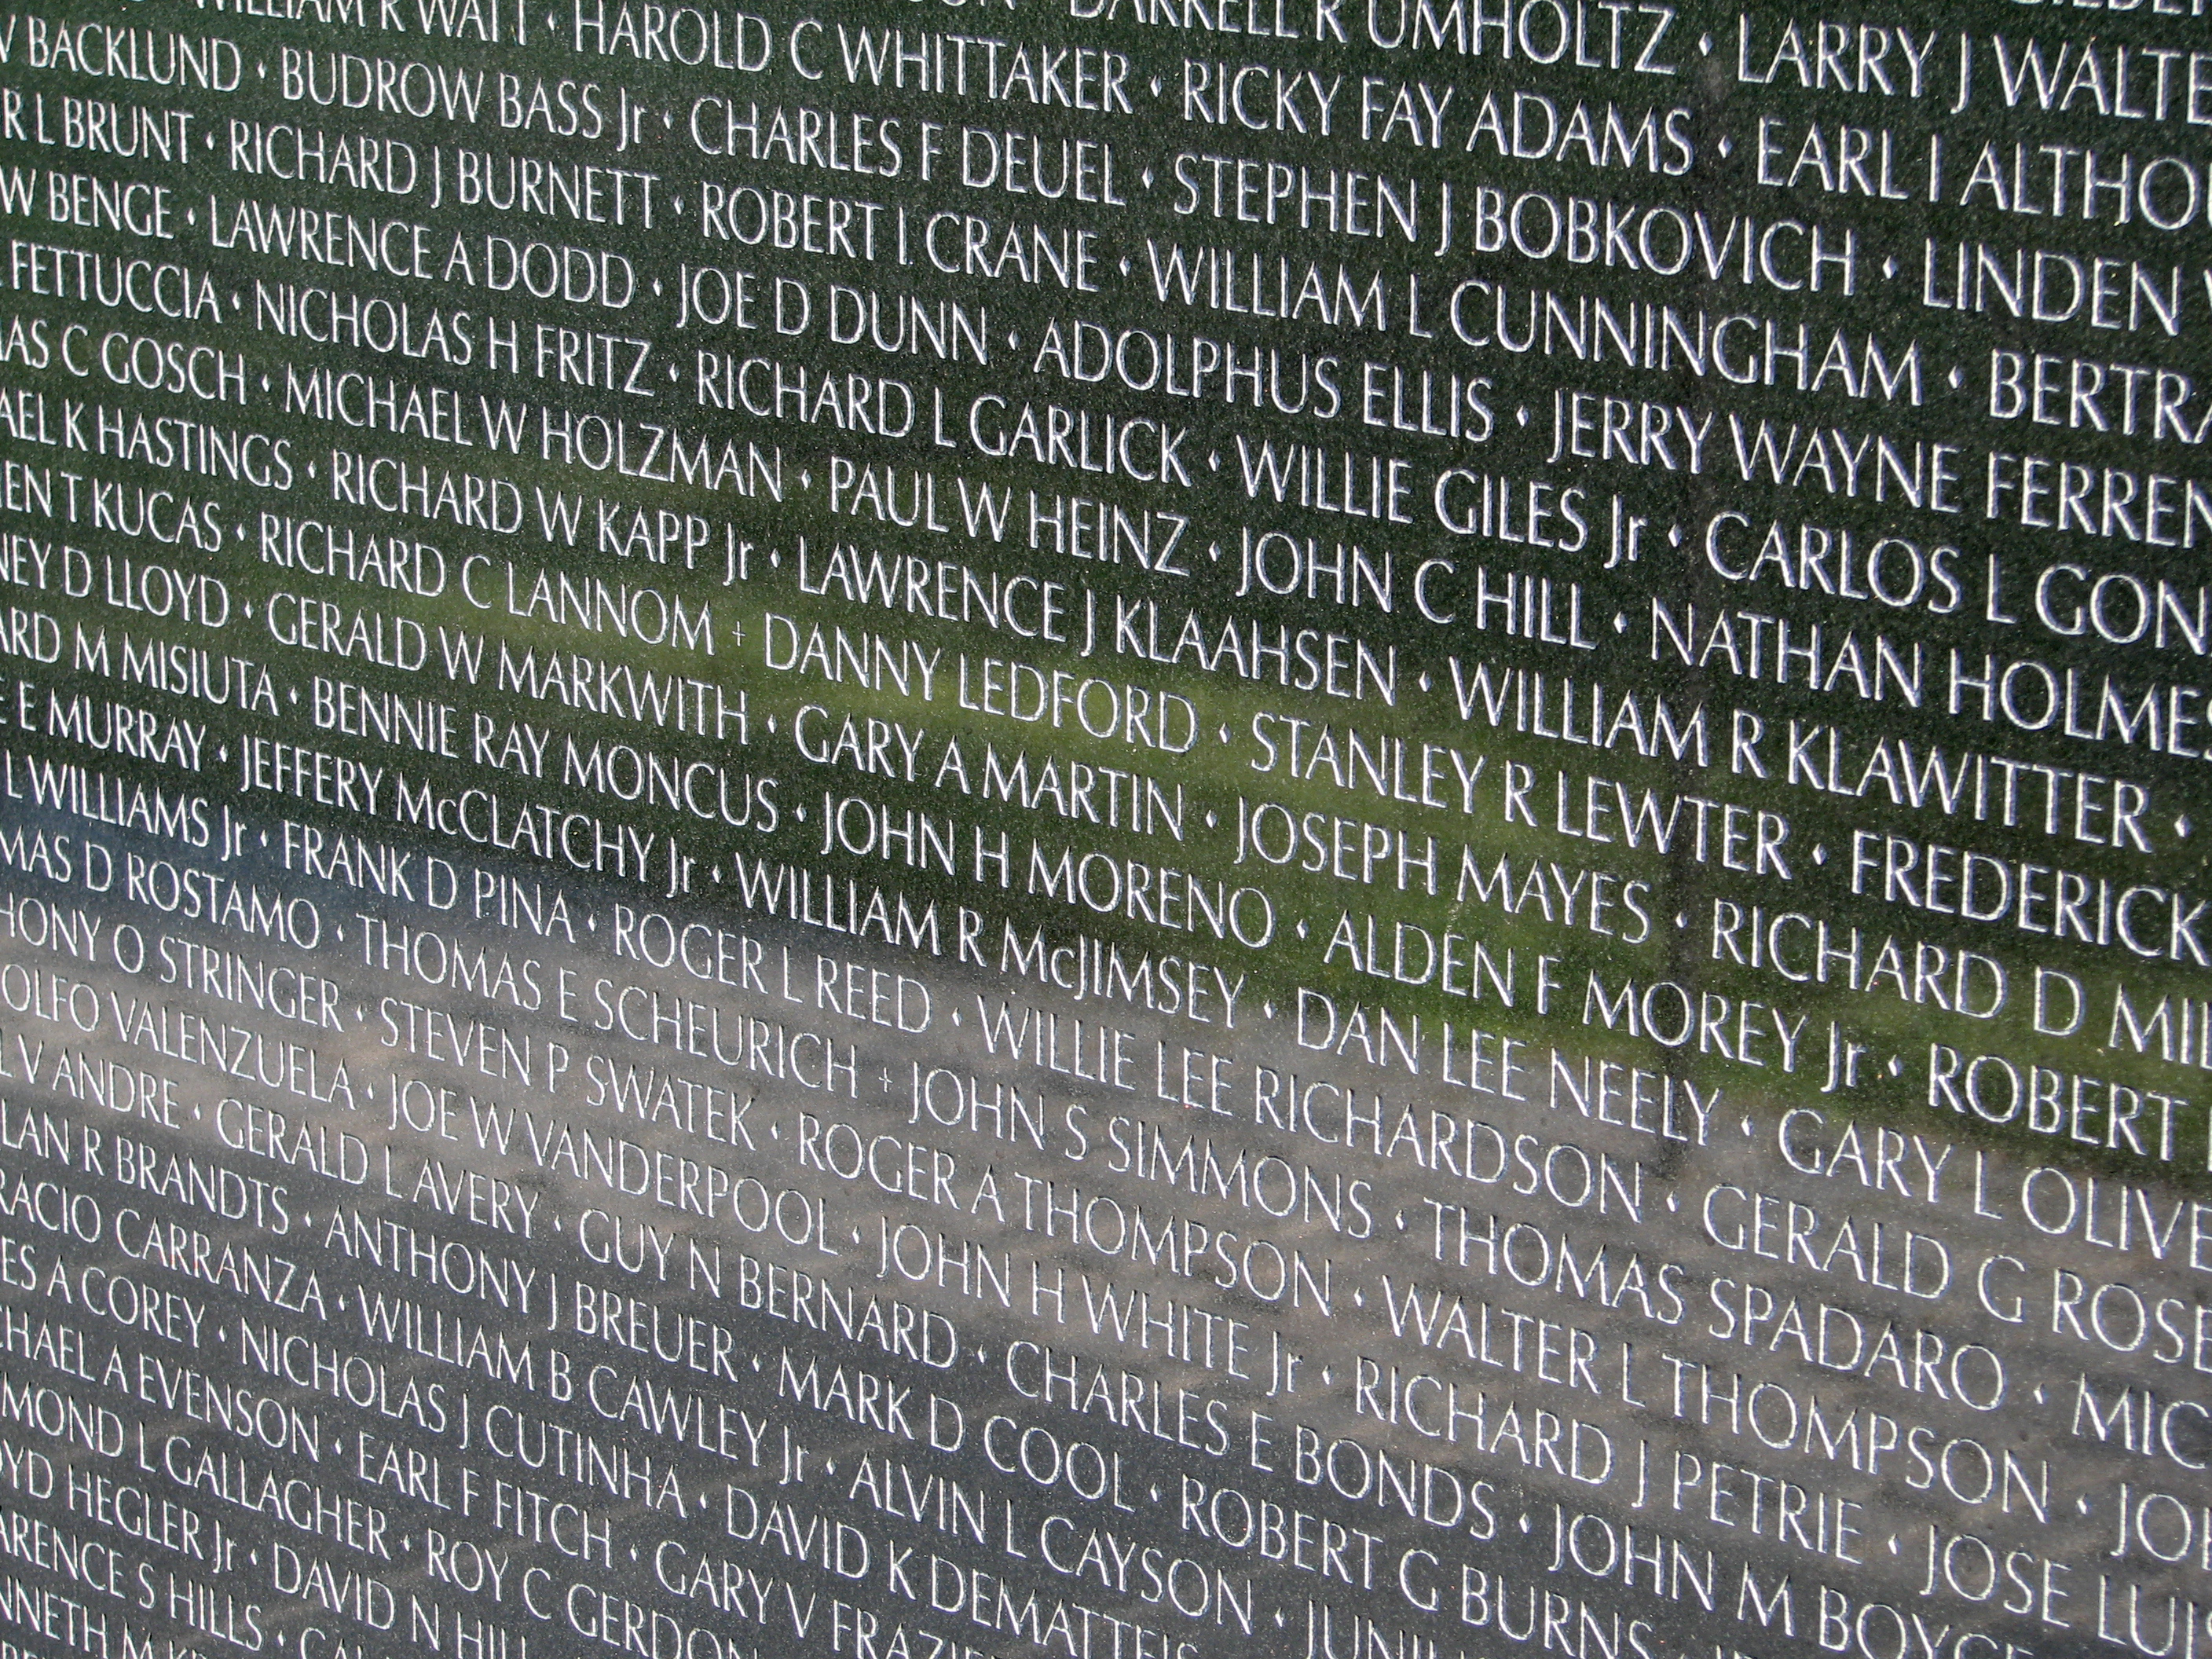 Names of Vietnam veterans at Vietnam Veterans Memorial in Washington, D.C. Photograph taken by Hu Totya on September 18, 2006.